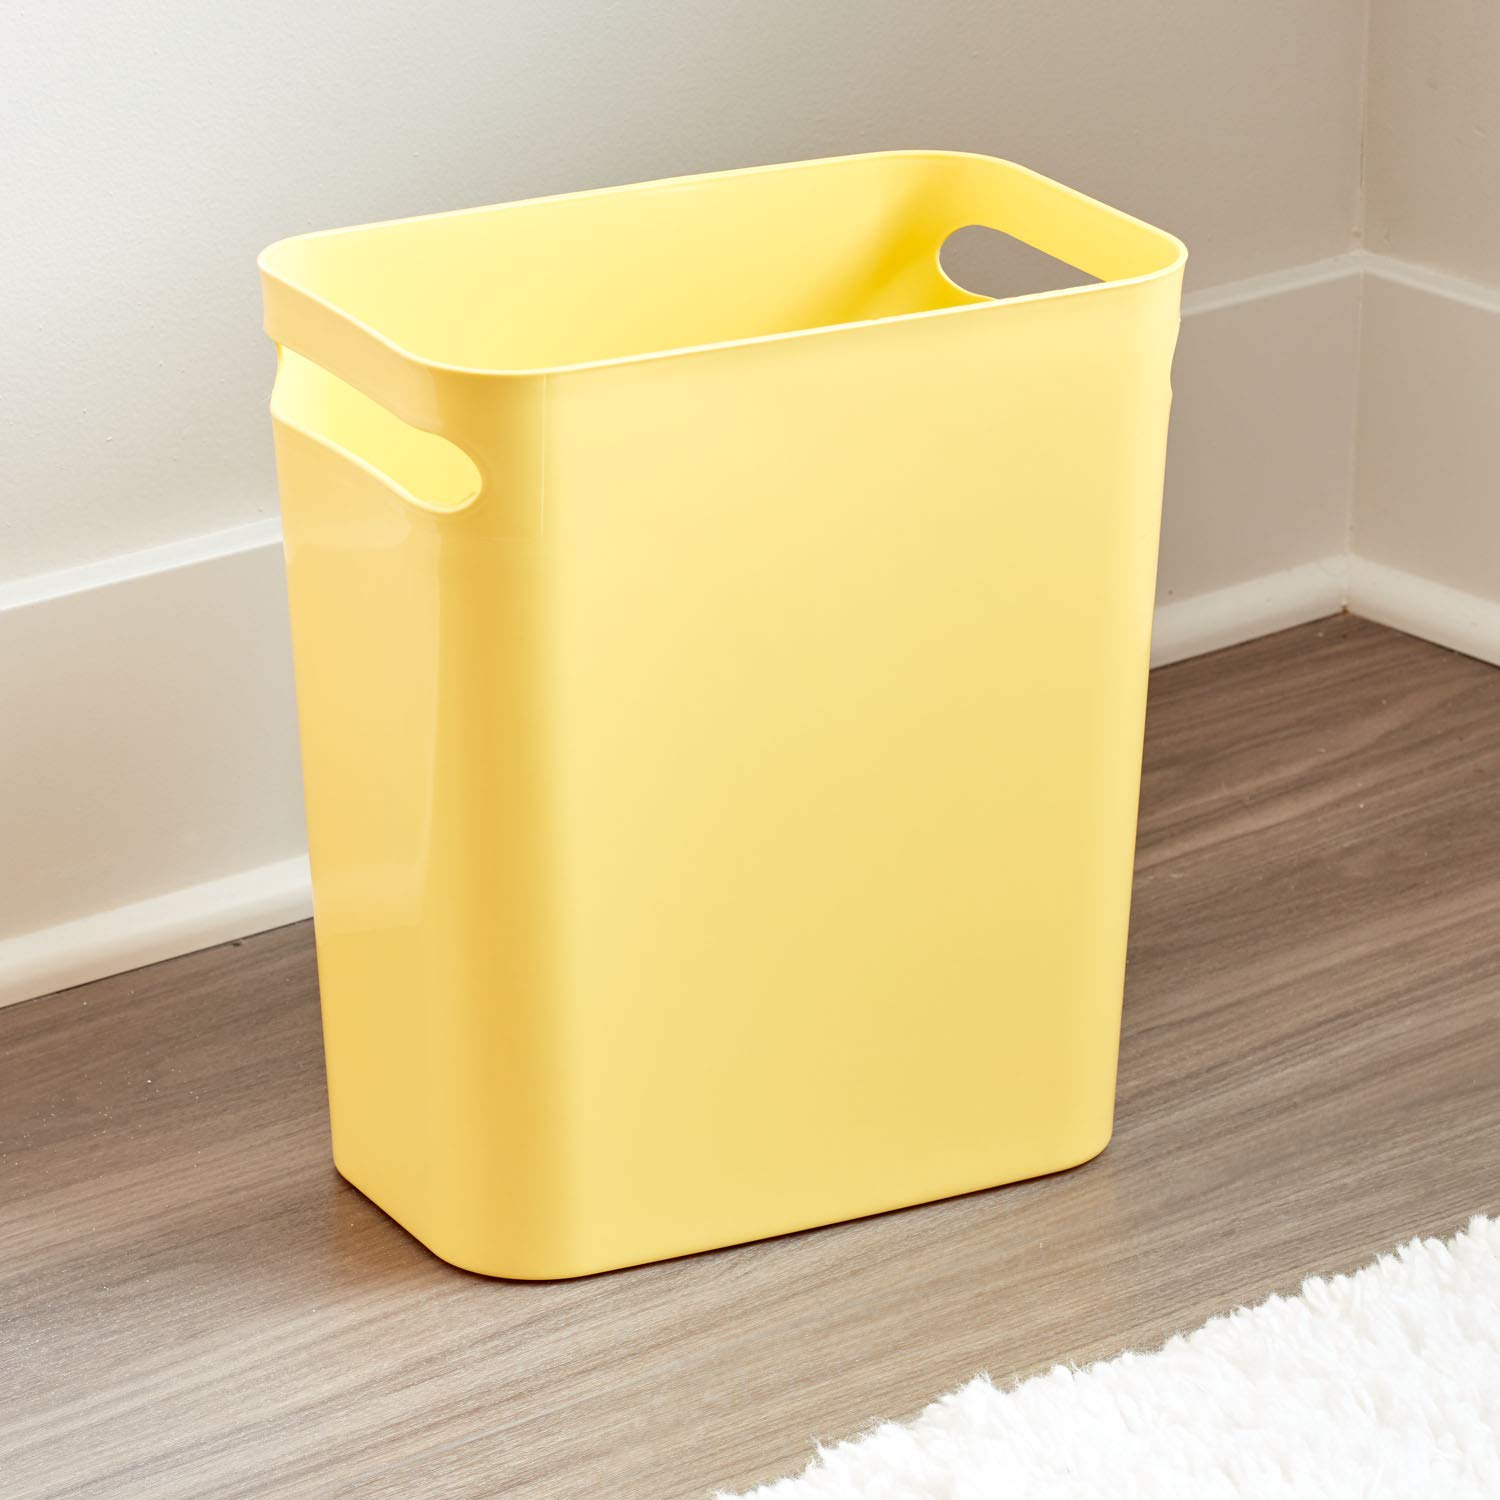 Bedroom-Set of 2 Trash Can for Bathroom Kitchen Yellow InterDesign UNA Waste 12 inch